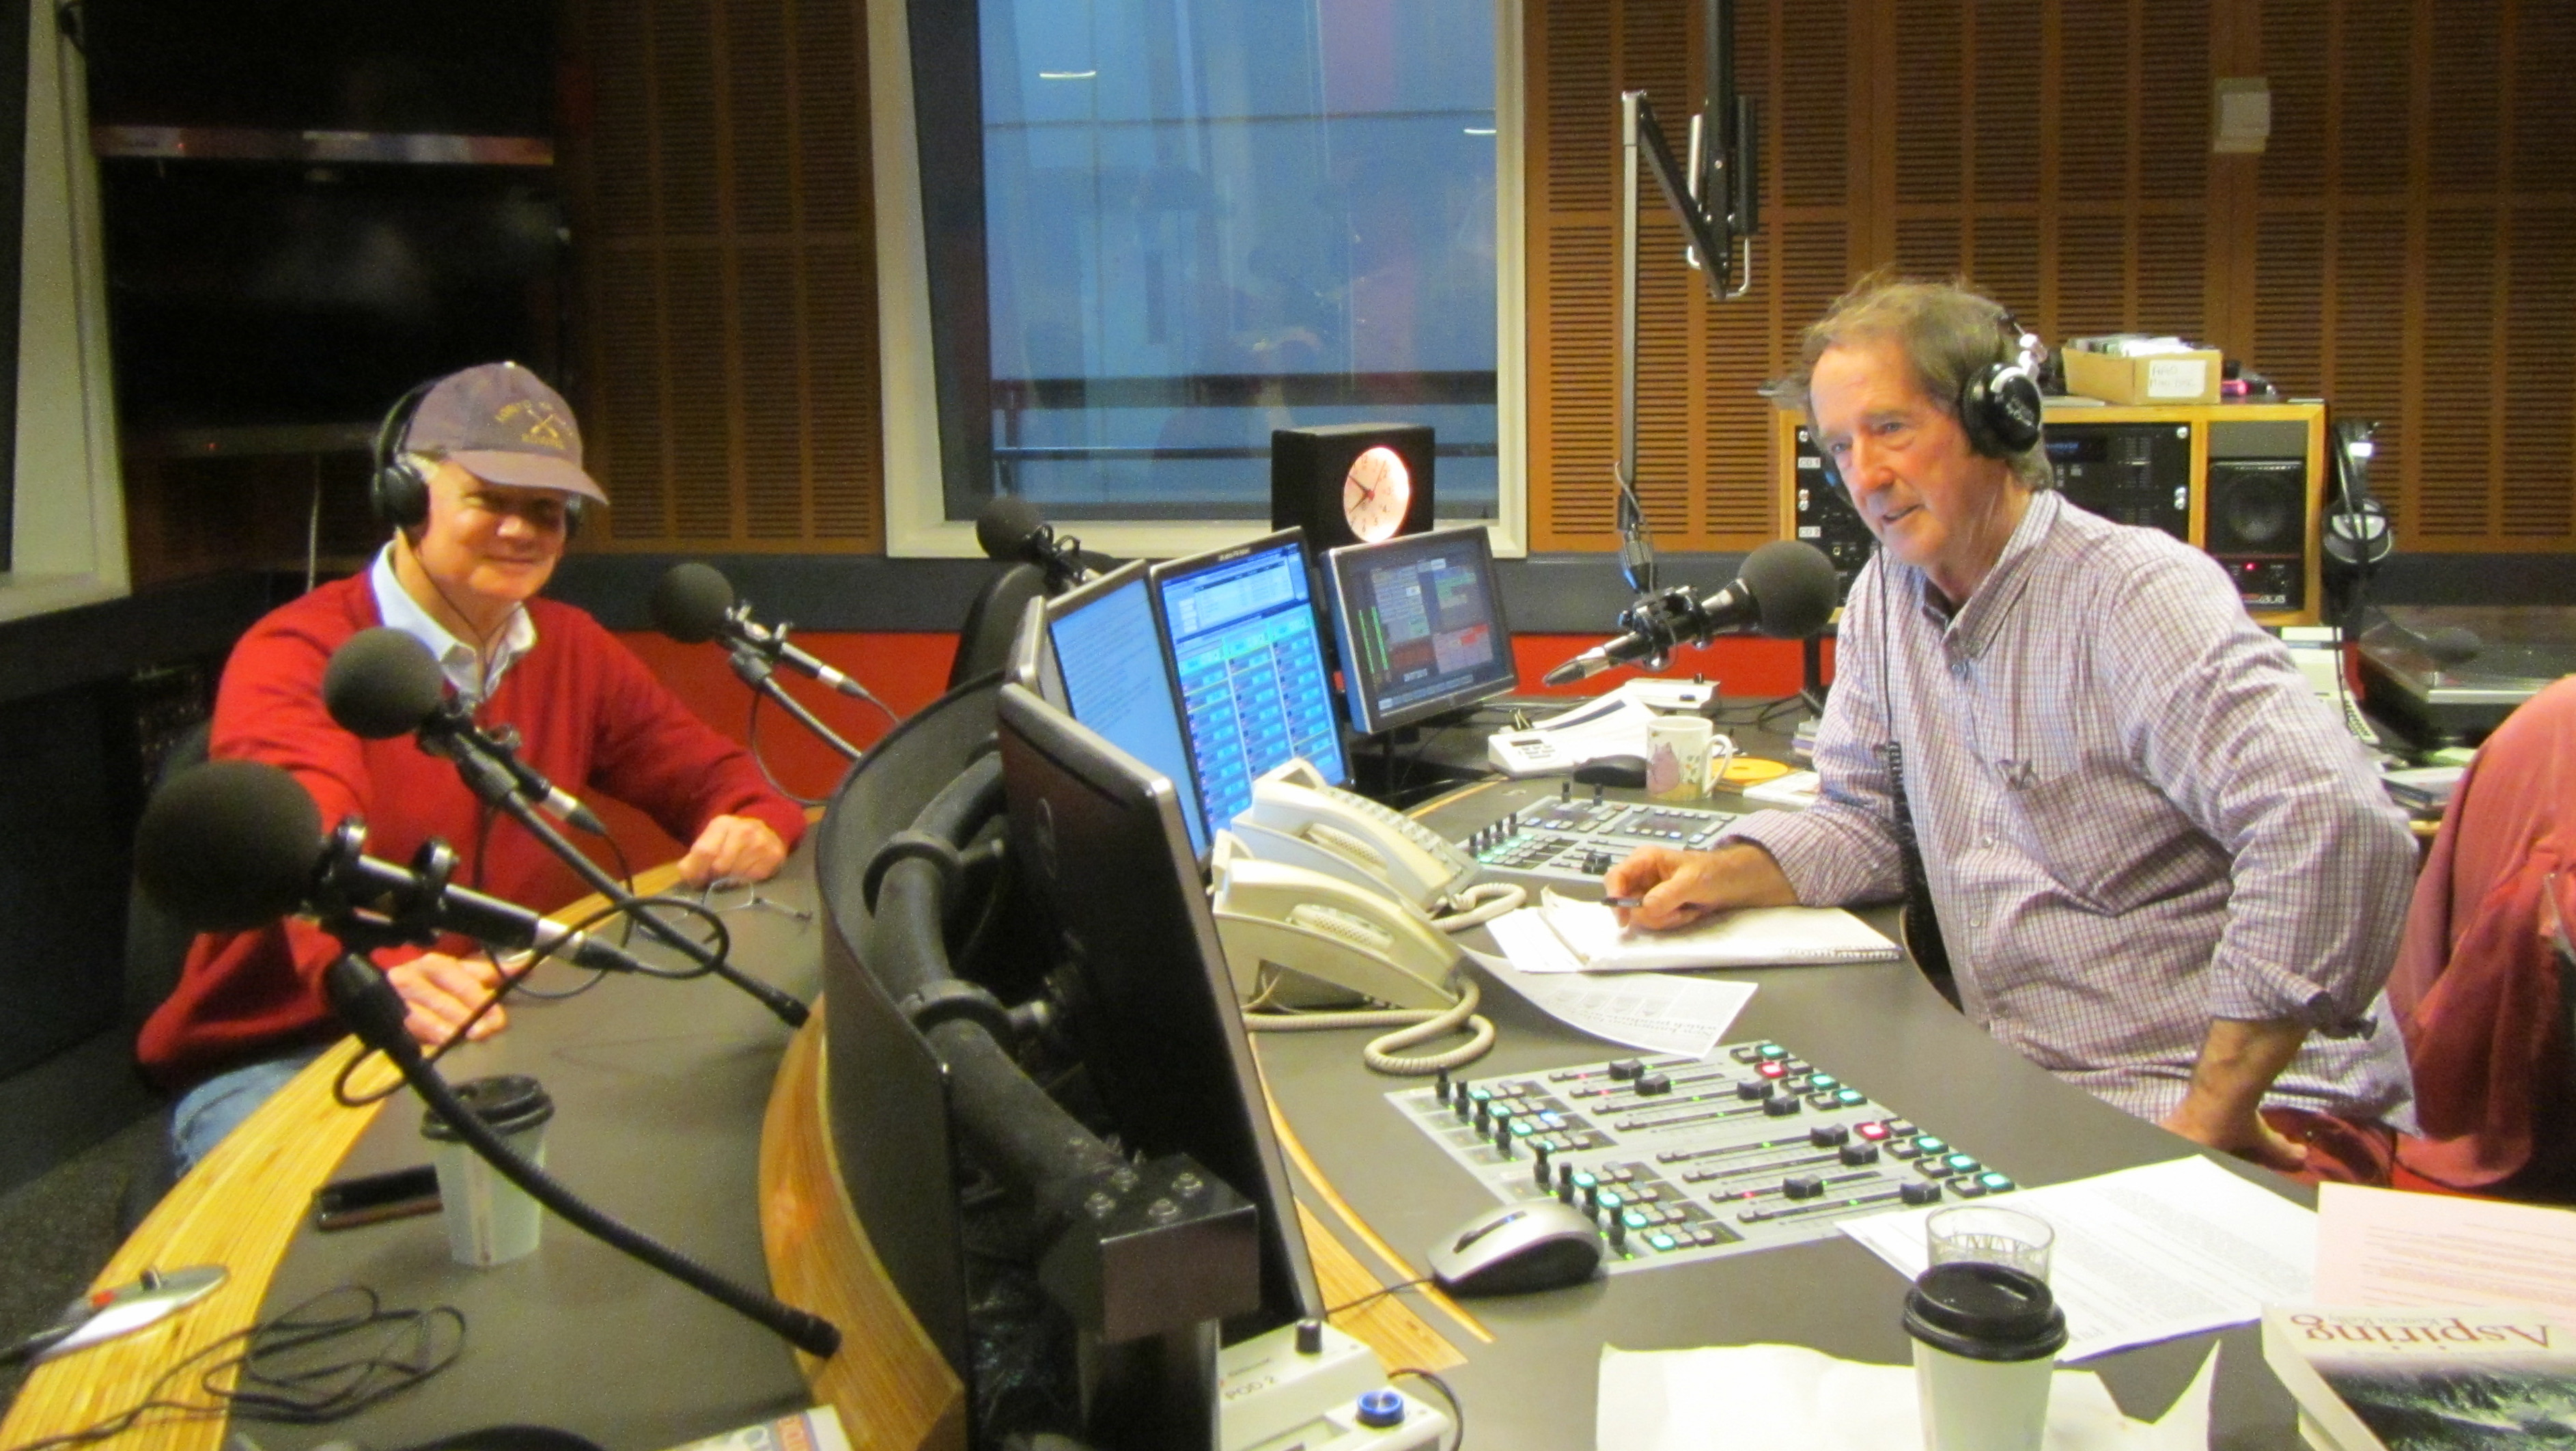 Appearing on ABC Radio show Australia All Over with Ian McNamara